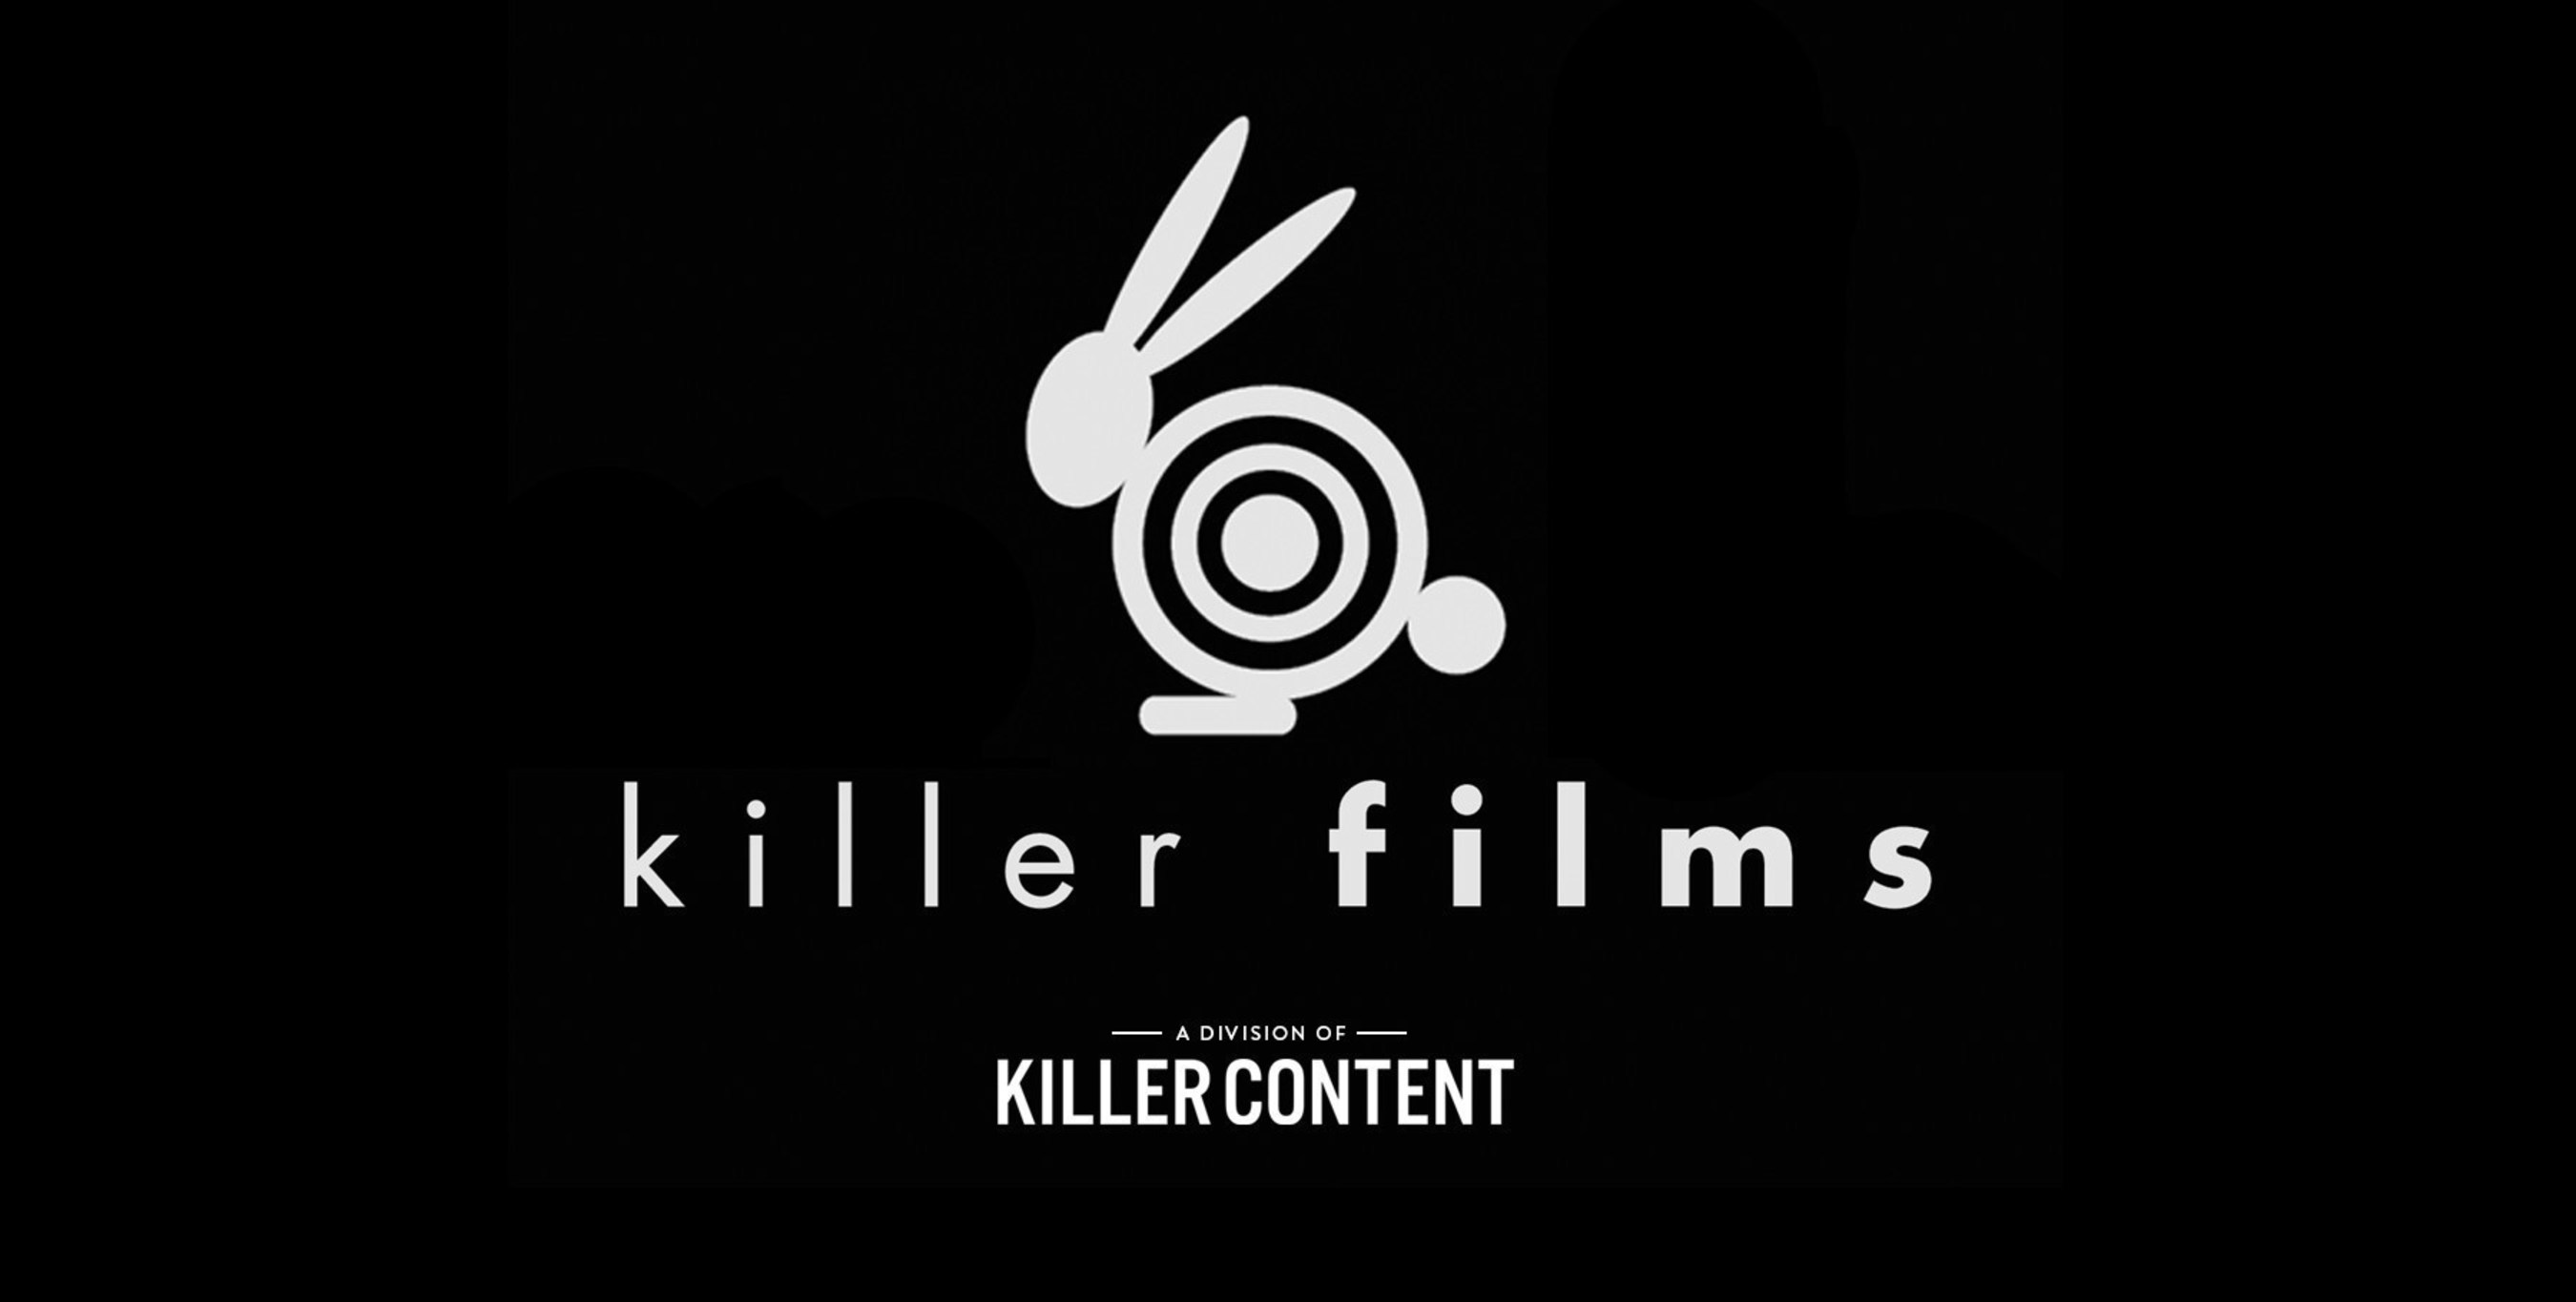 Killer Films Media is launching to create original narrative storytelling on behalf of select brands.